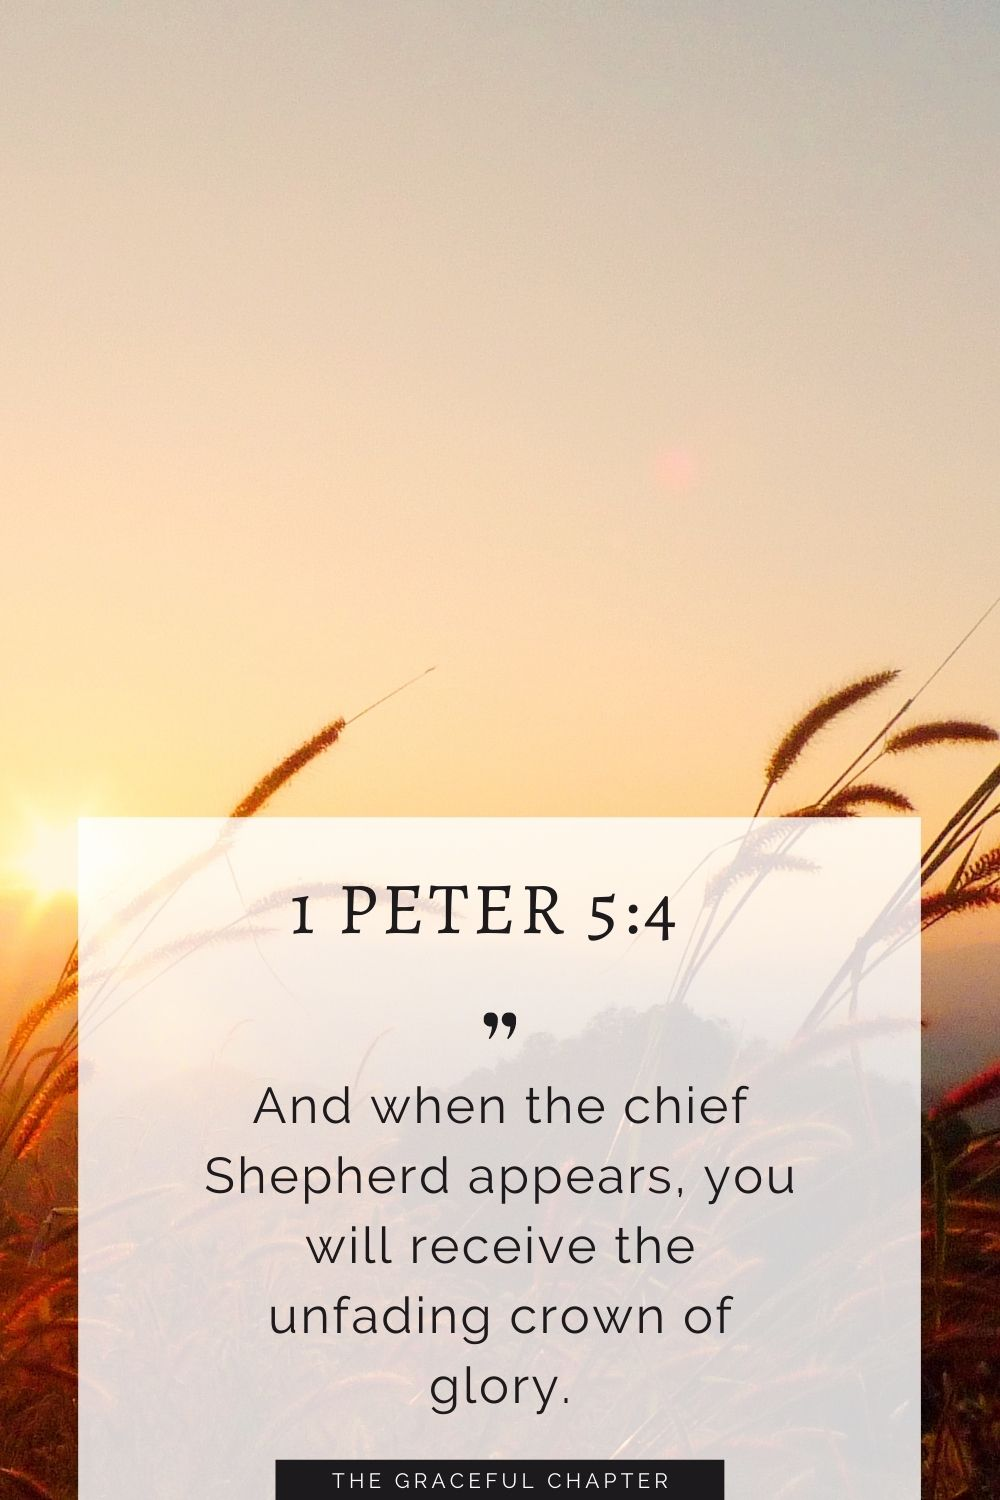 And when the chief Shepherd appears, you will receive the unfading crown of glory. 1 Peter 5:4